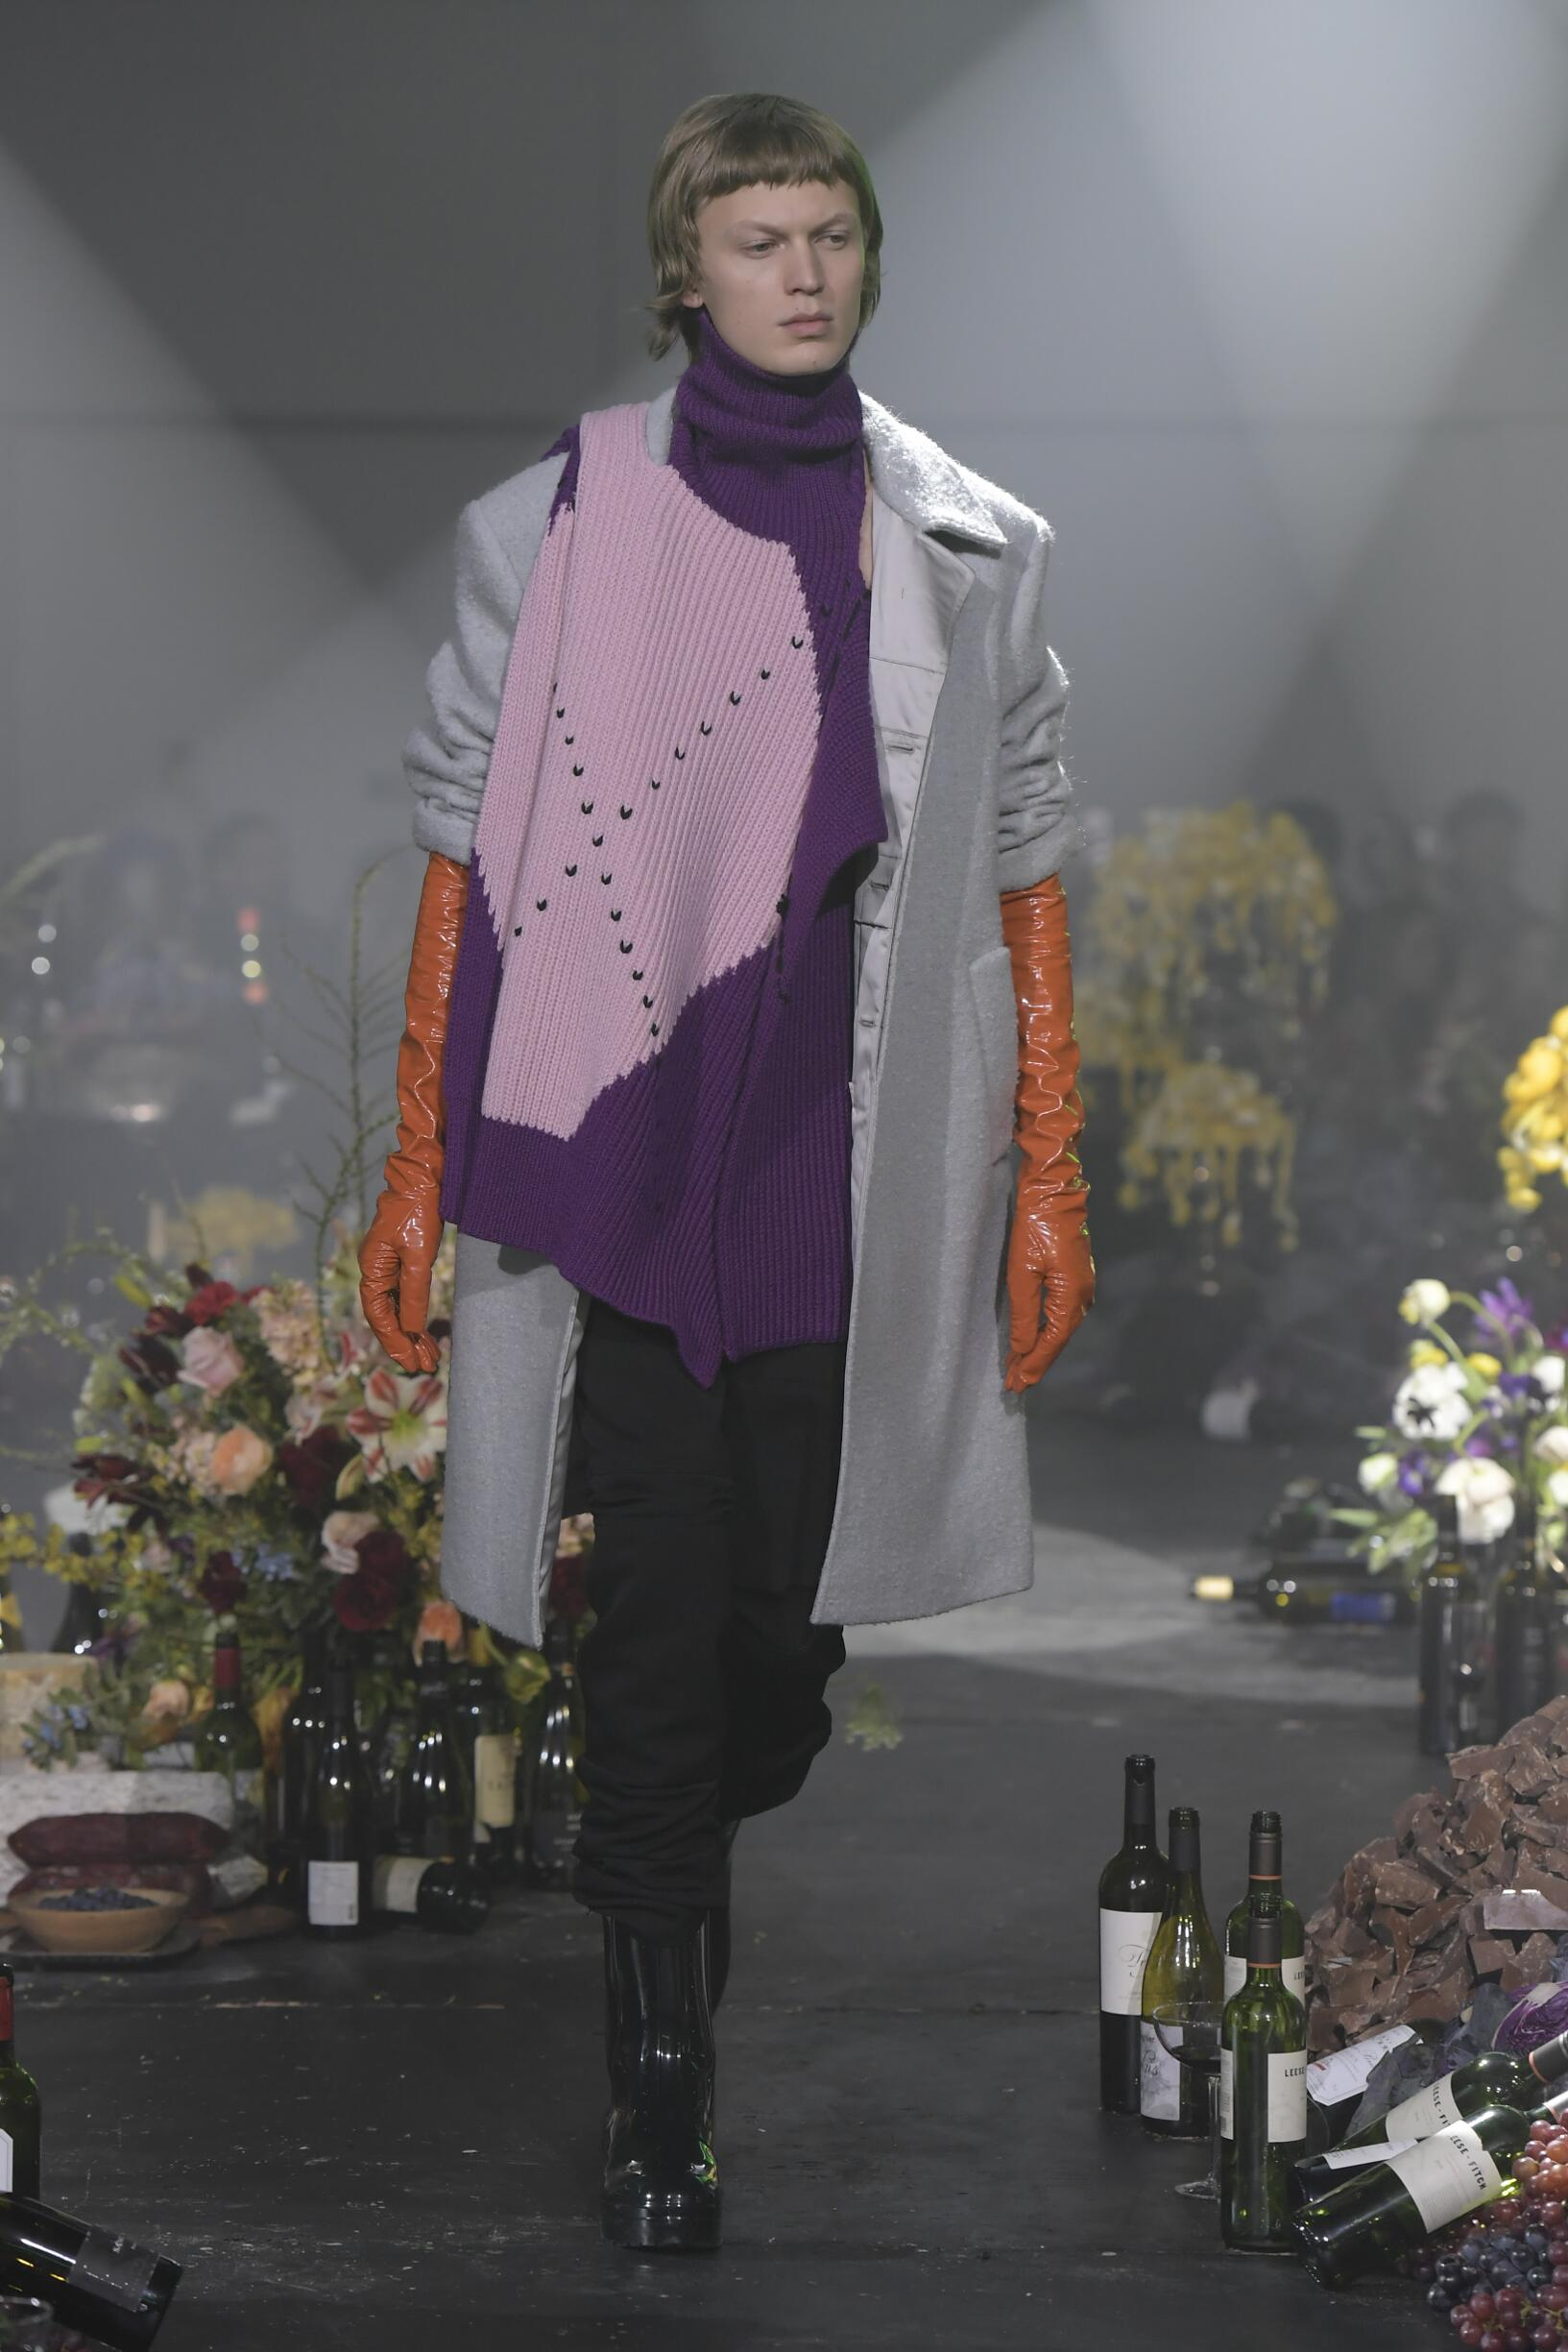 Man FW 2018-19 Fashion Show Raf Simons